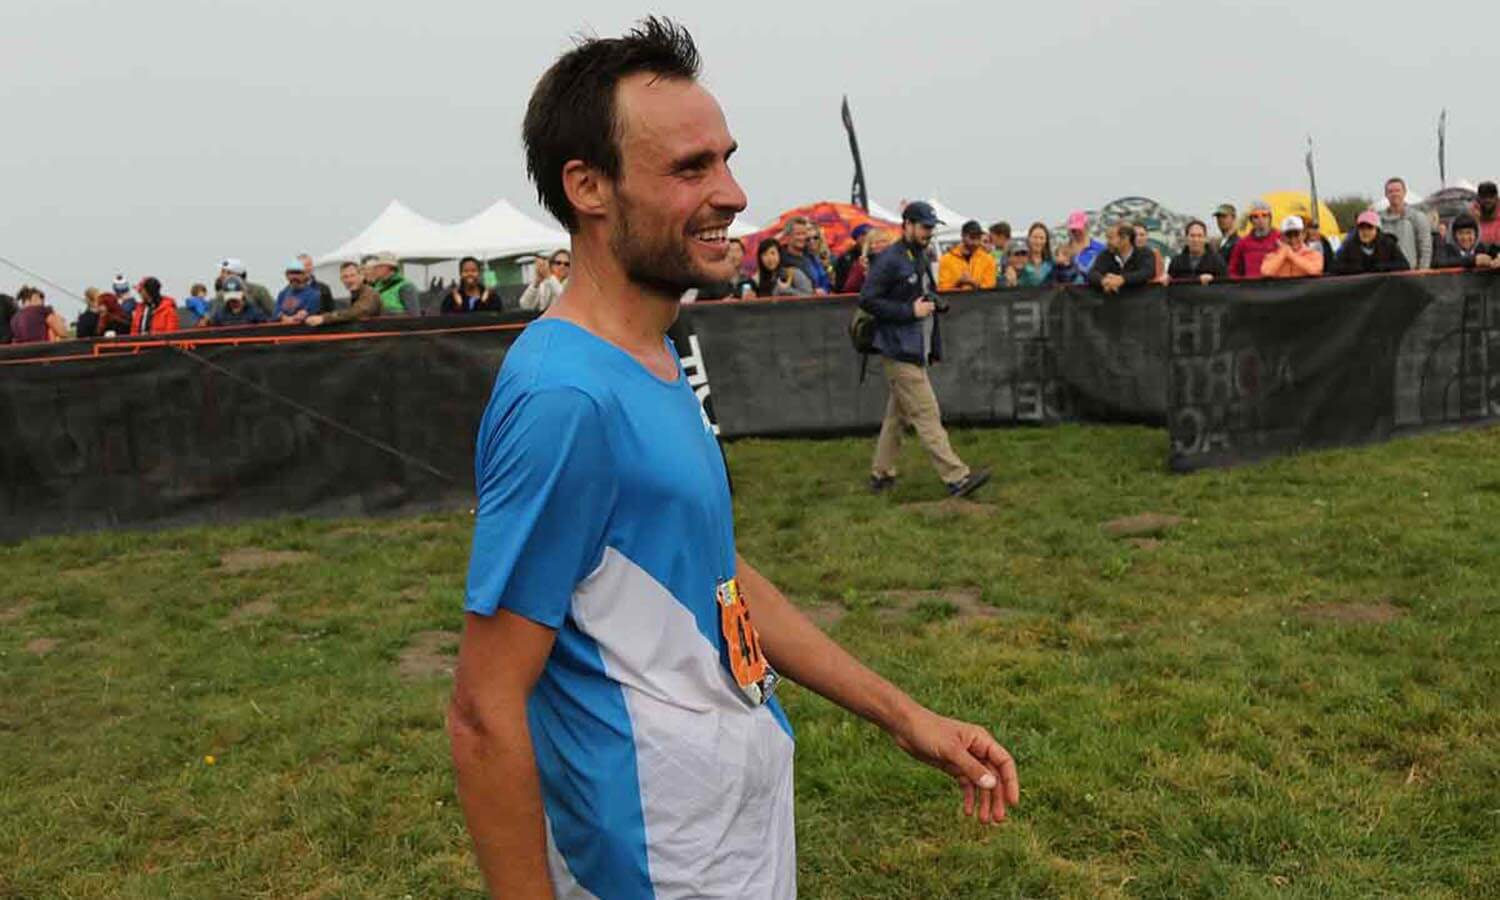 HOKA athlete Thibaut Garrivier all smiles after TNF 50